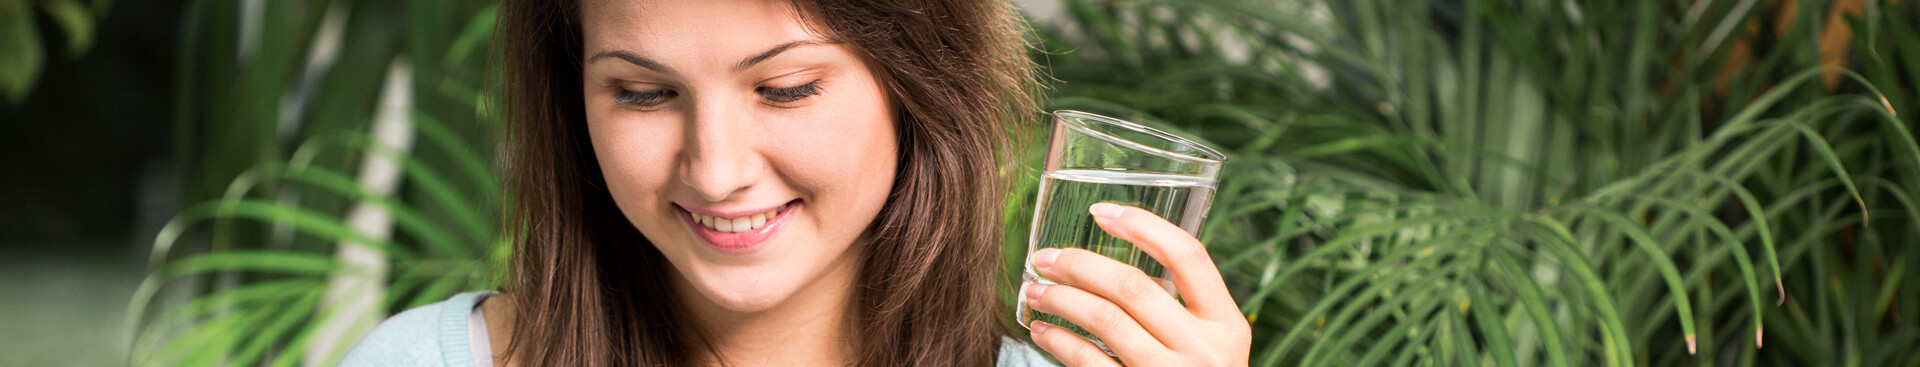 Woman smiling and holding a glass of water